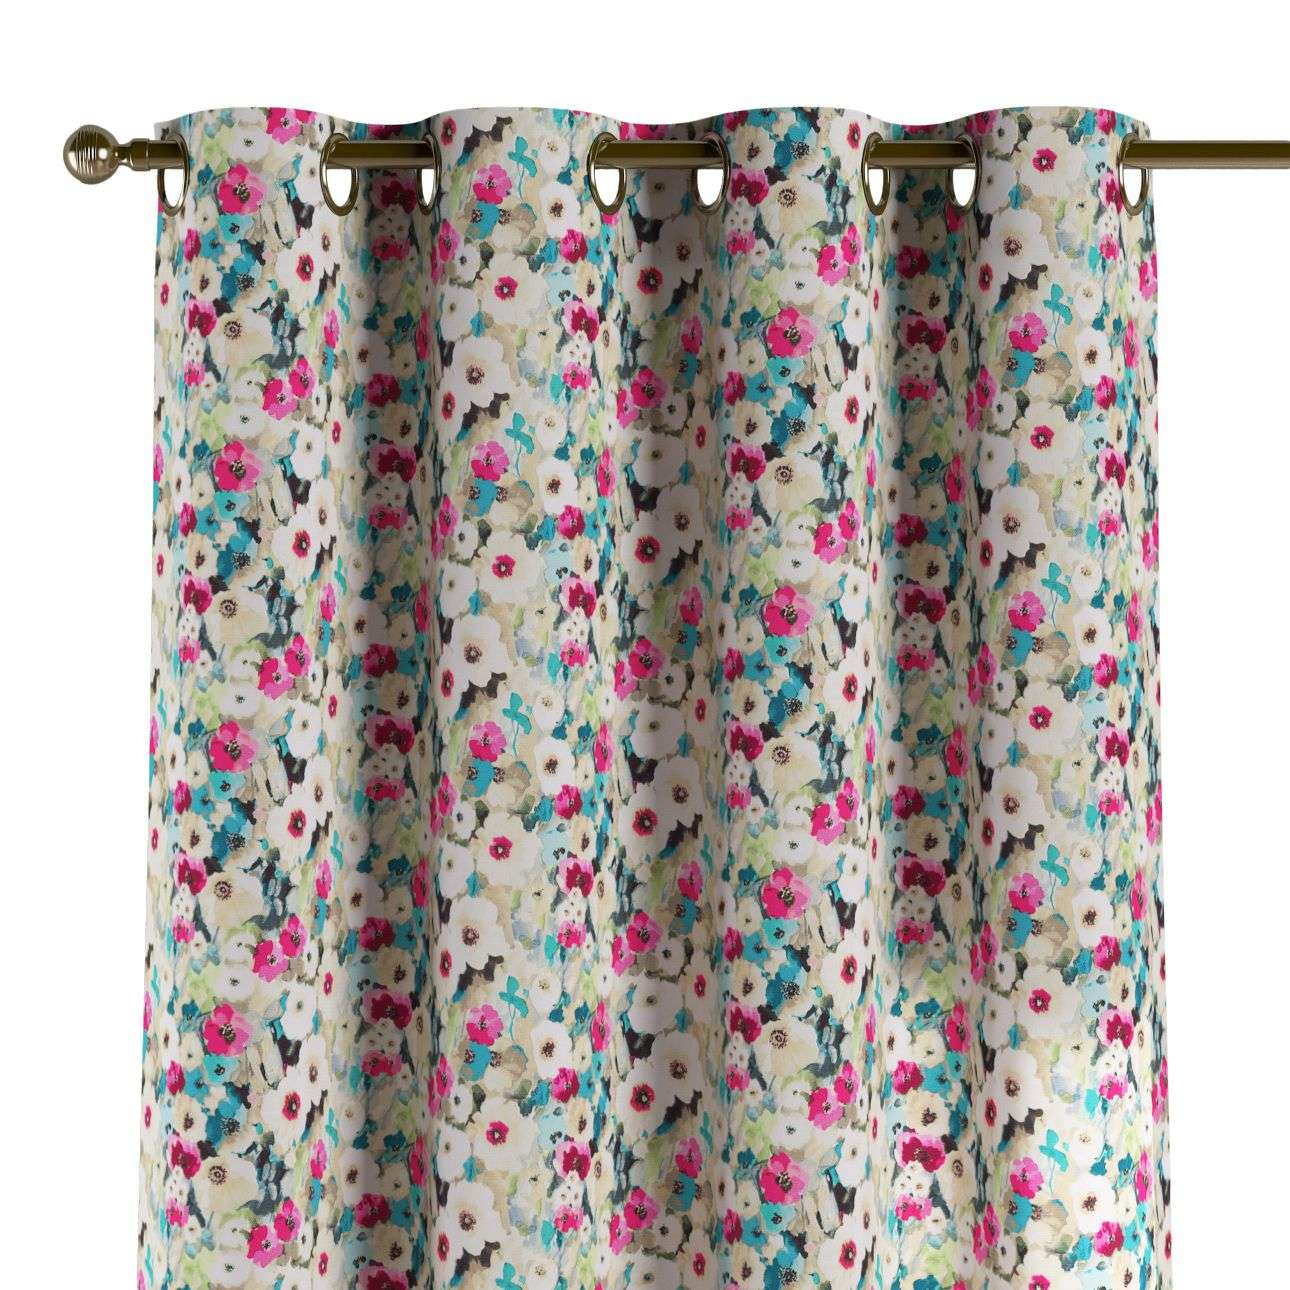 Eyelet curtains 130 x 260 cm (51 x 102 inch) in collection Monet, fabric: 140-10